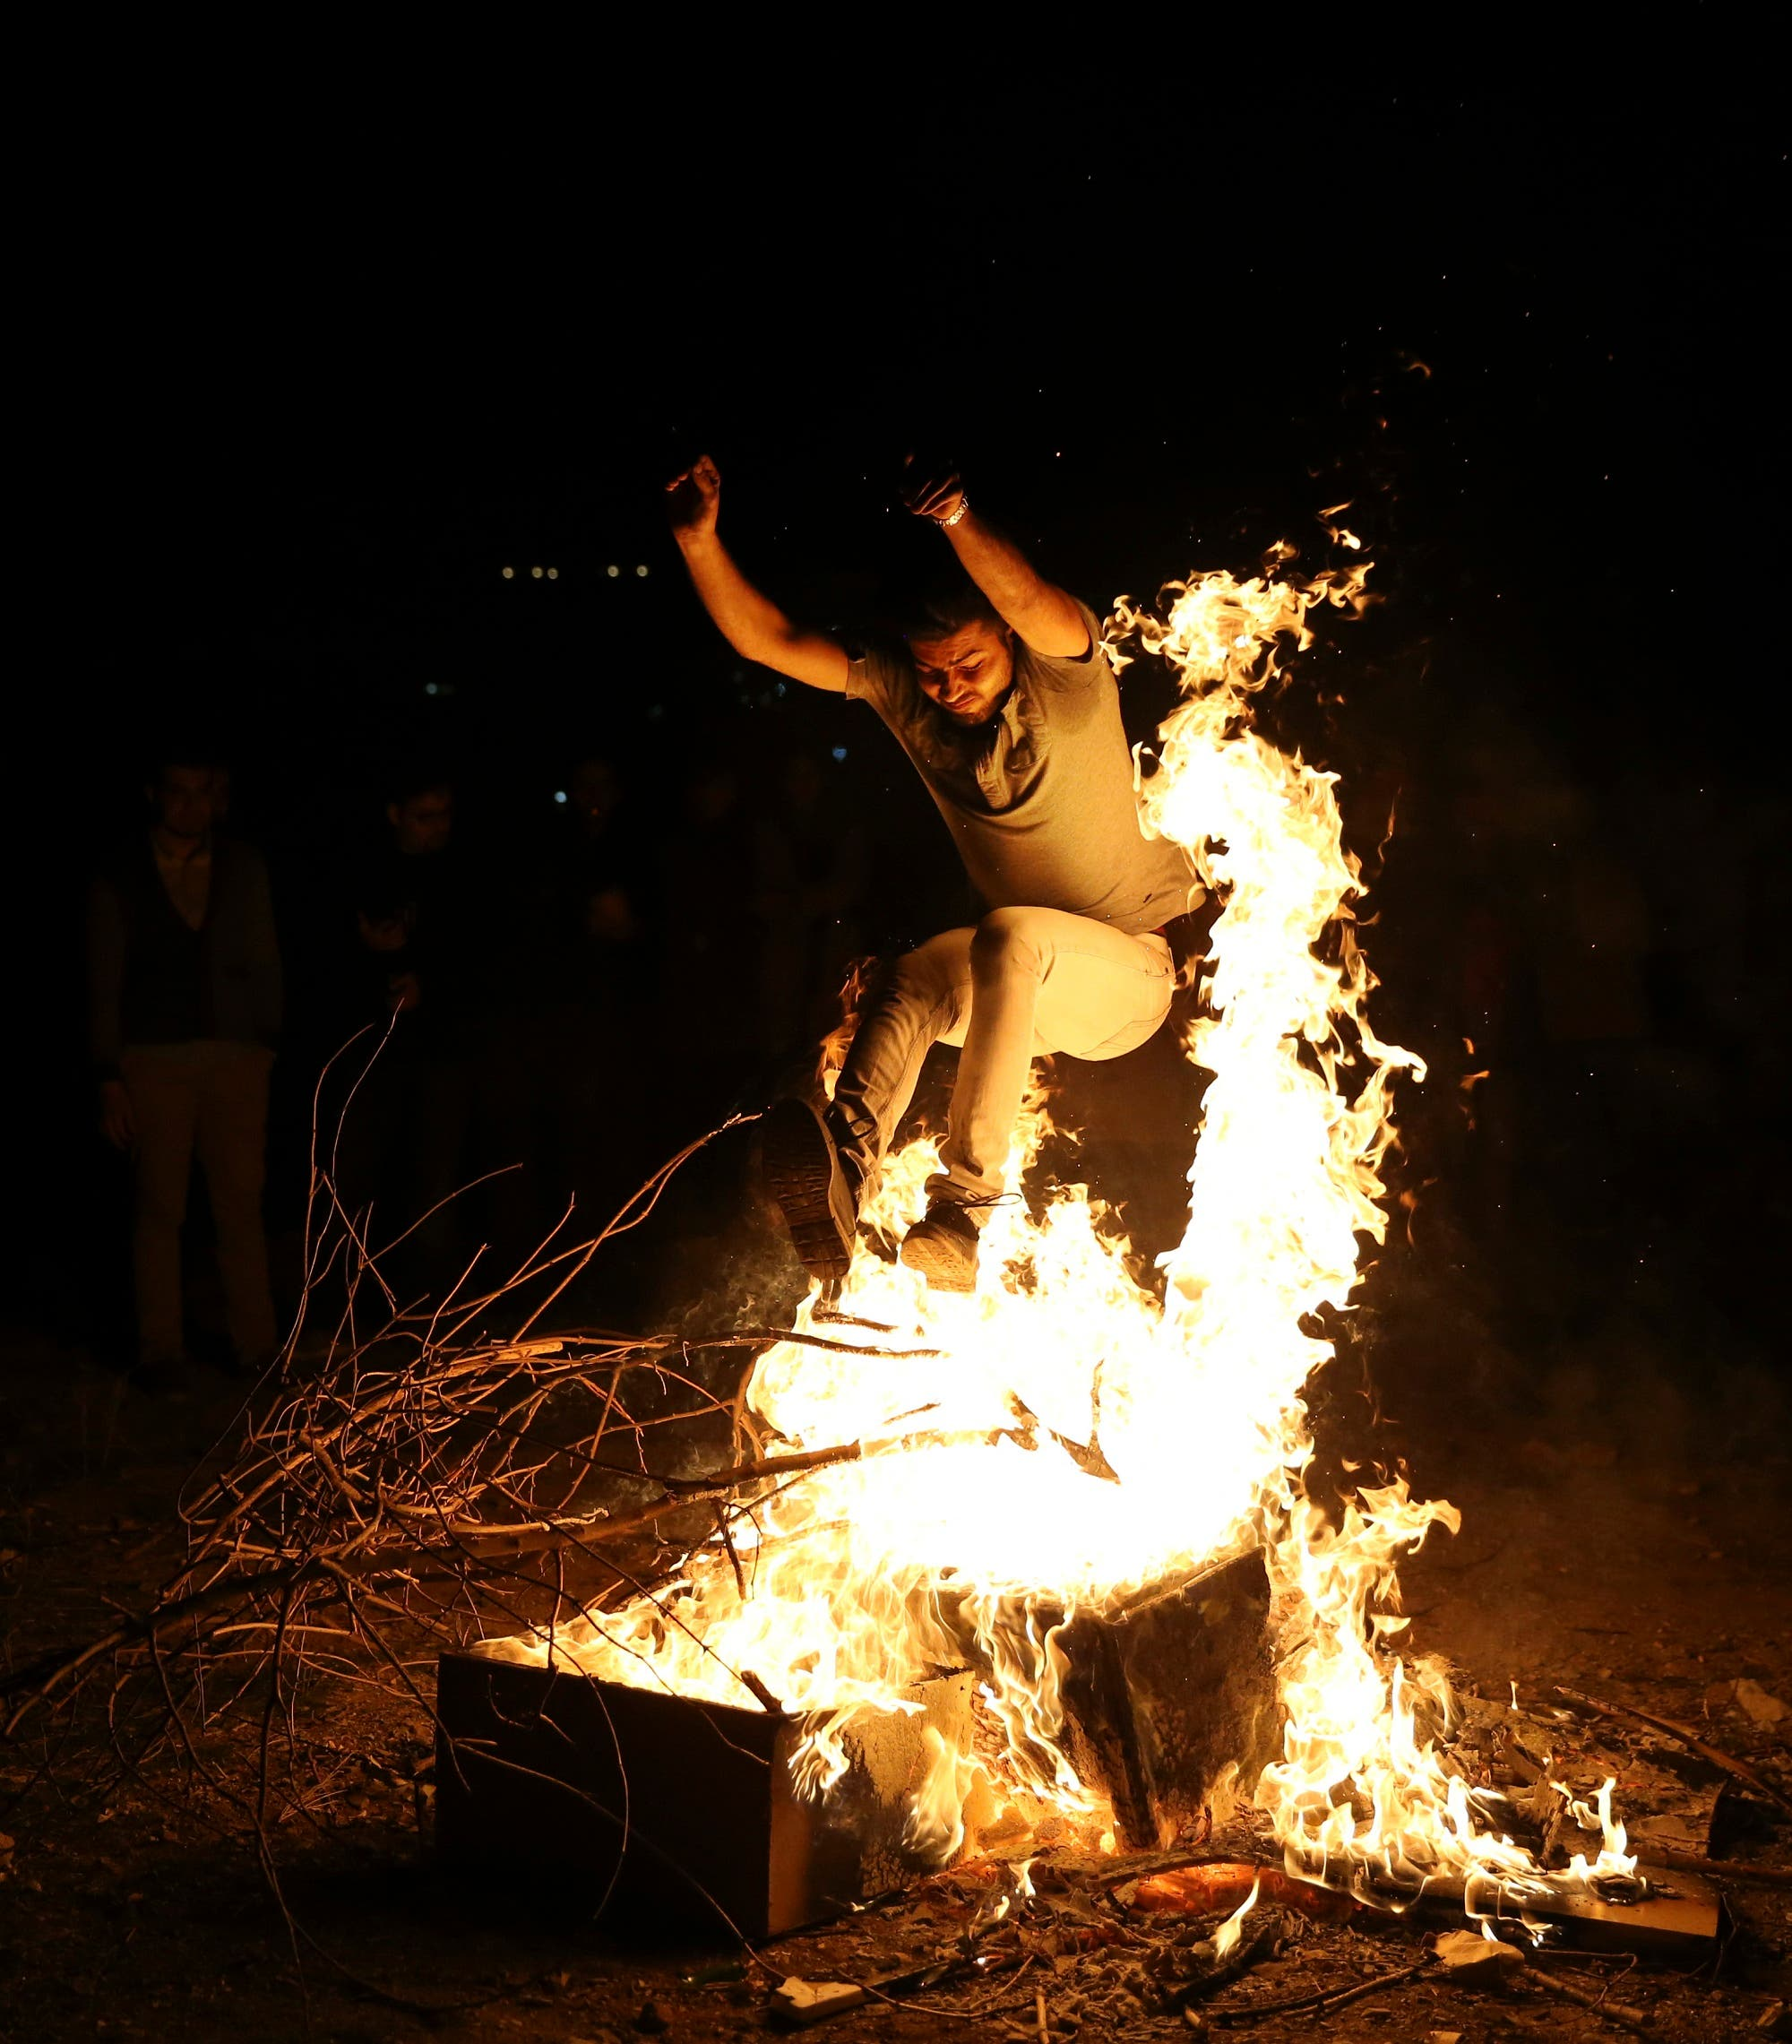 An Iranian man jumps over a bonfire during Chaharshanbe Souri in Tehran on March 17, 2015. (AP)